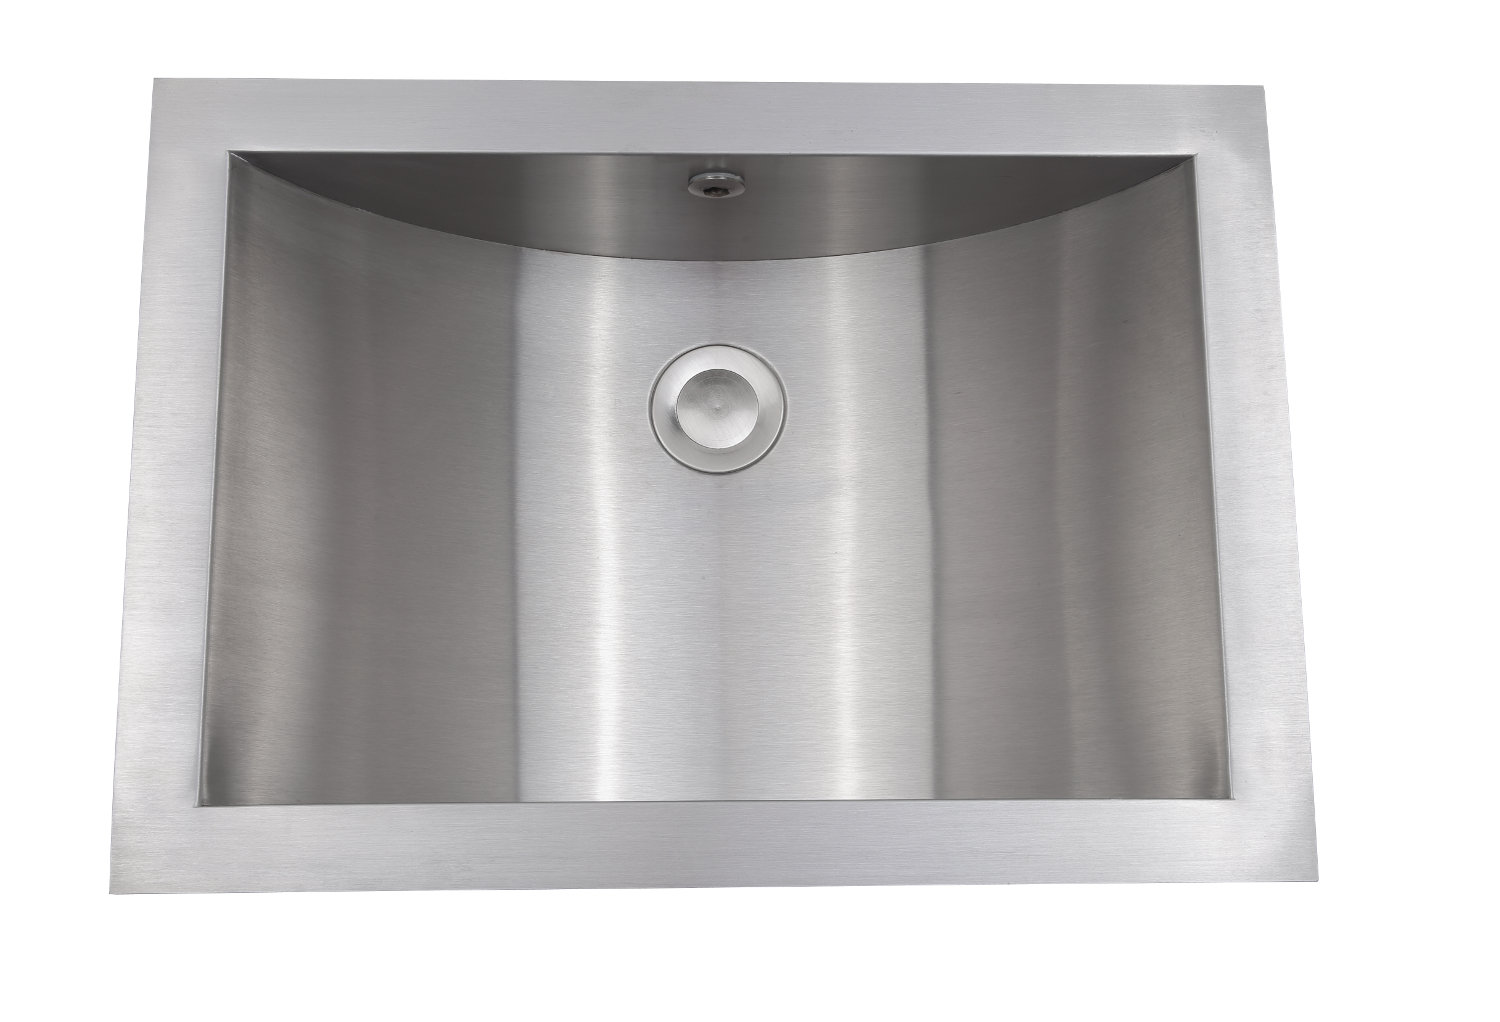 Single Bowl Undermount Legend Stainless Steel Bathroom Sink